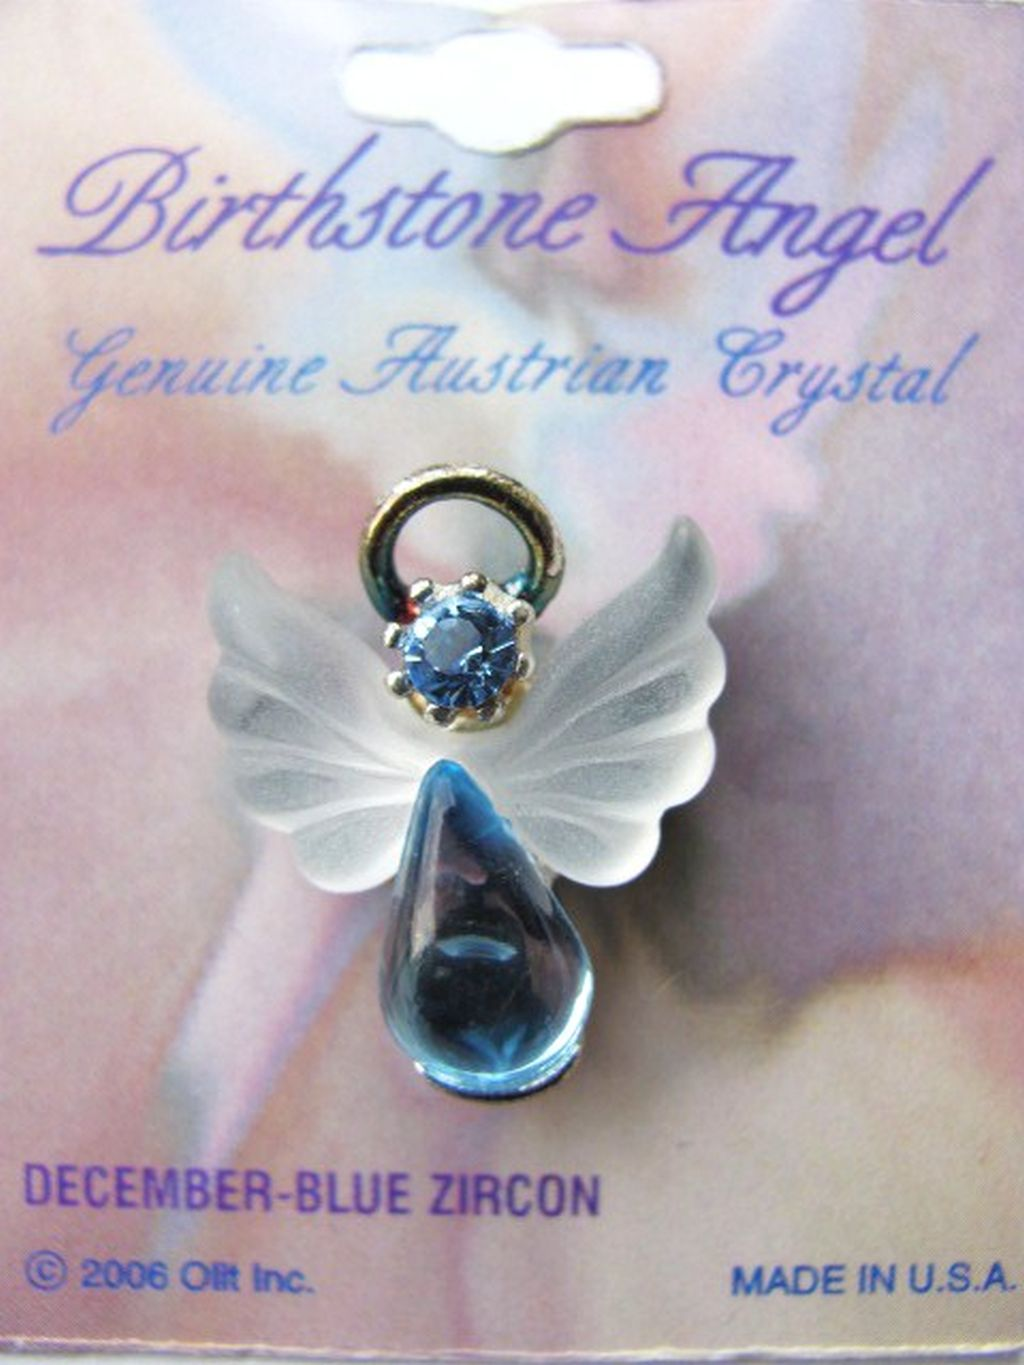 Blue Zircon December Birthstone Angel Pin, Genuine Austrian Crystals